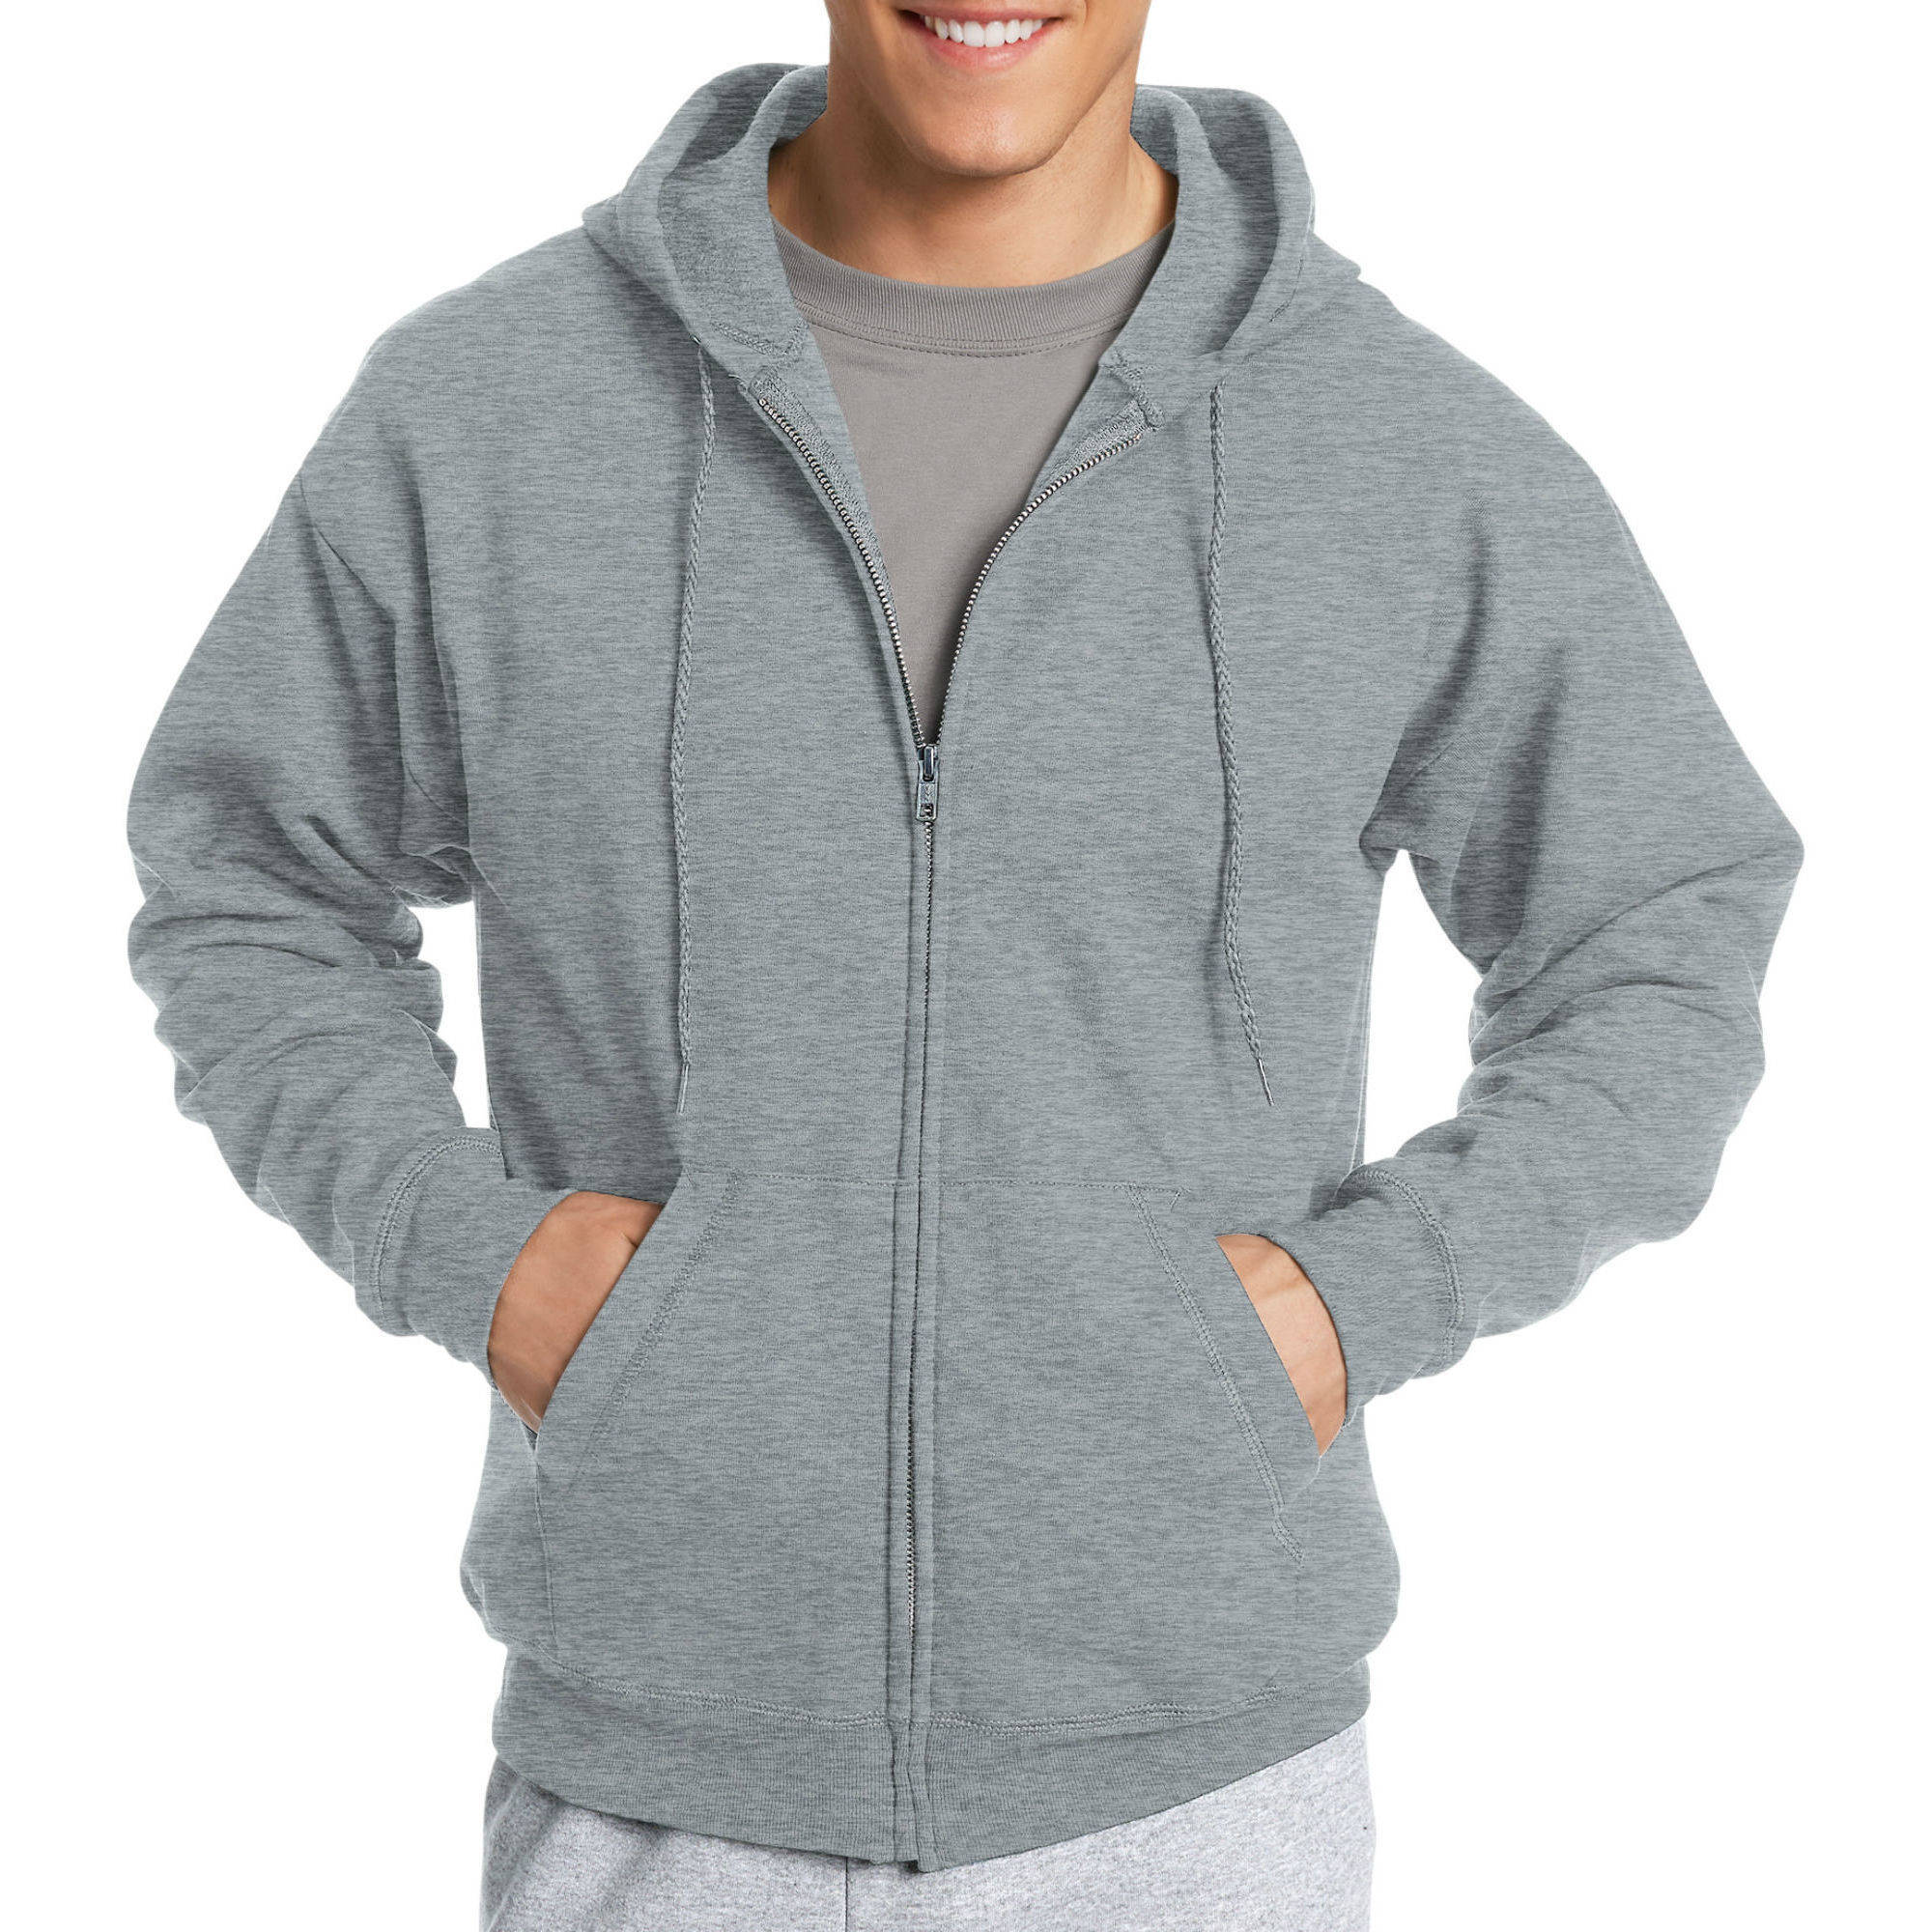 Big & Tall Men's EcoSmart Fleece Zip Pullover Hoodie with Front Pocket